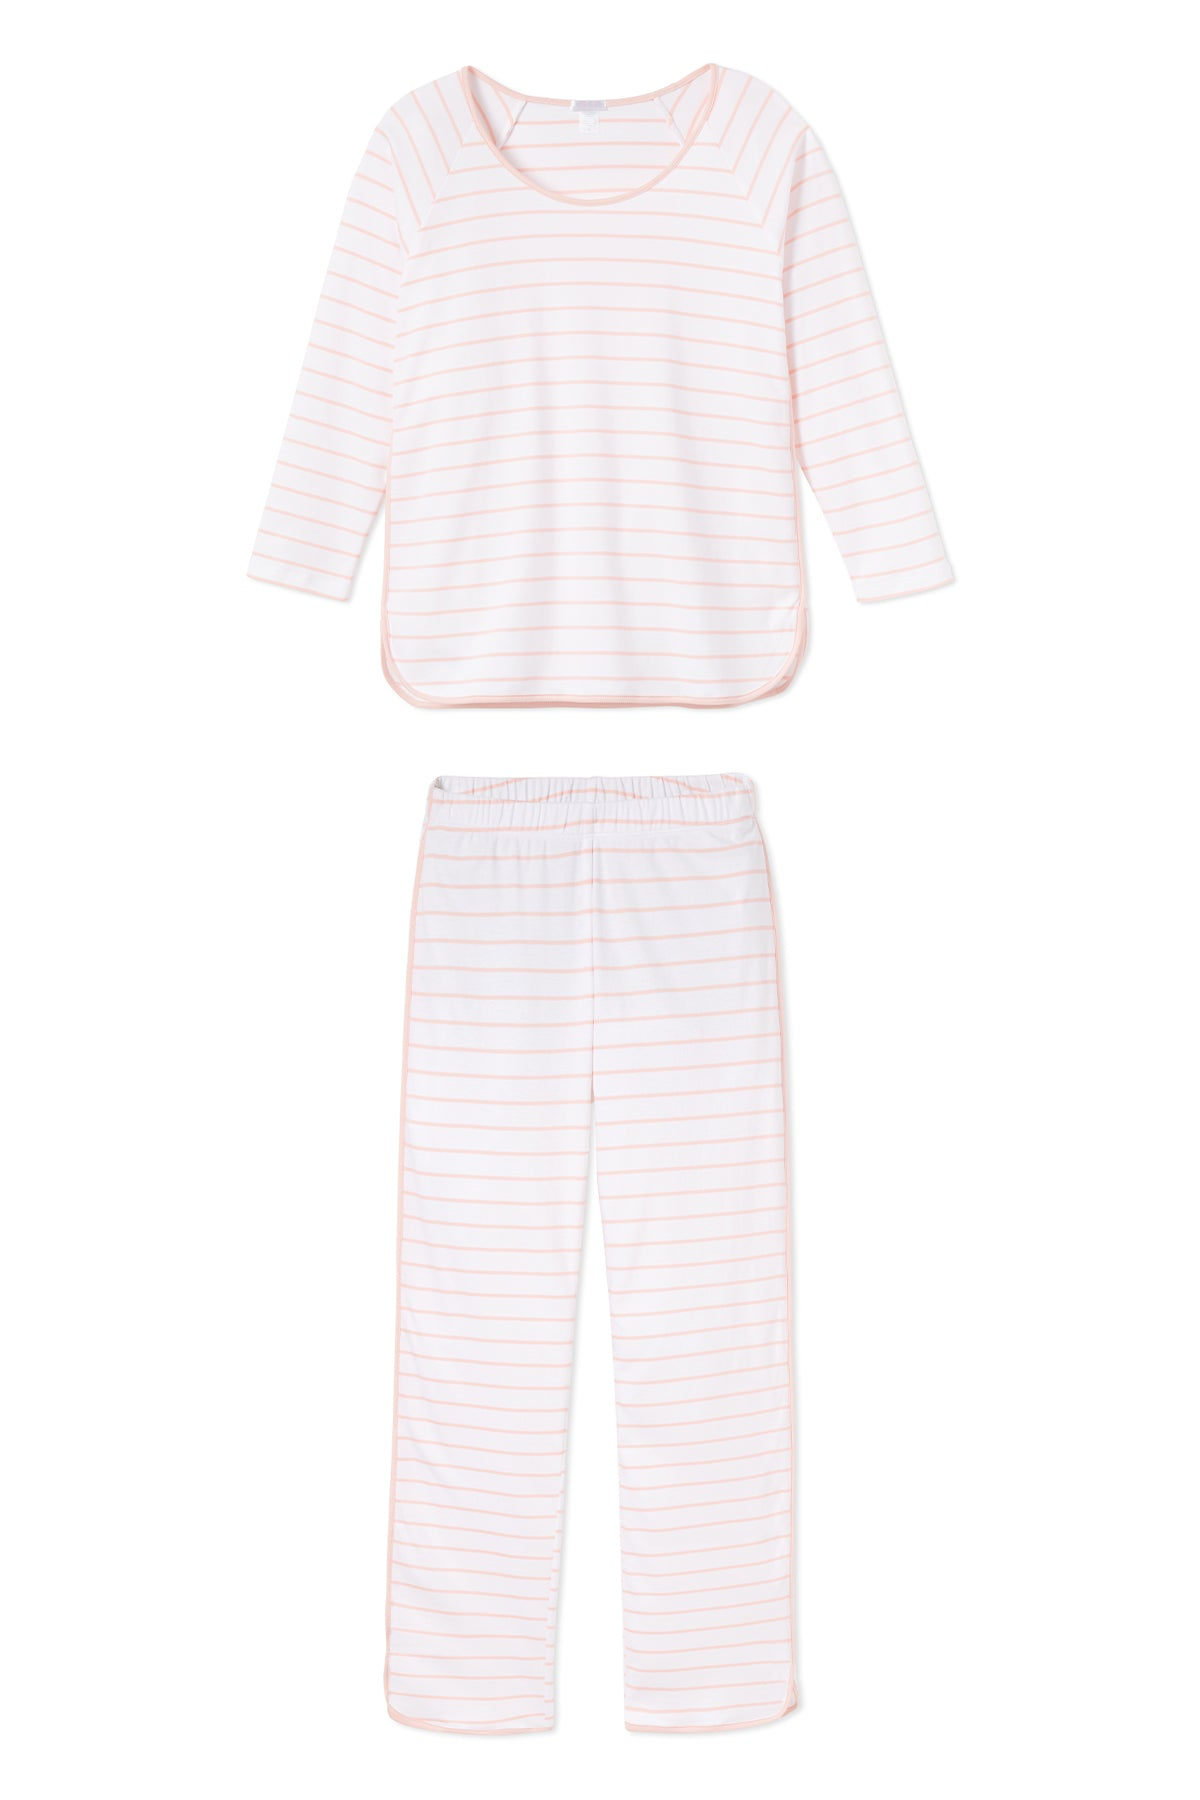 Pima Long-Long Set in Peach